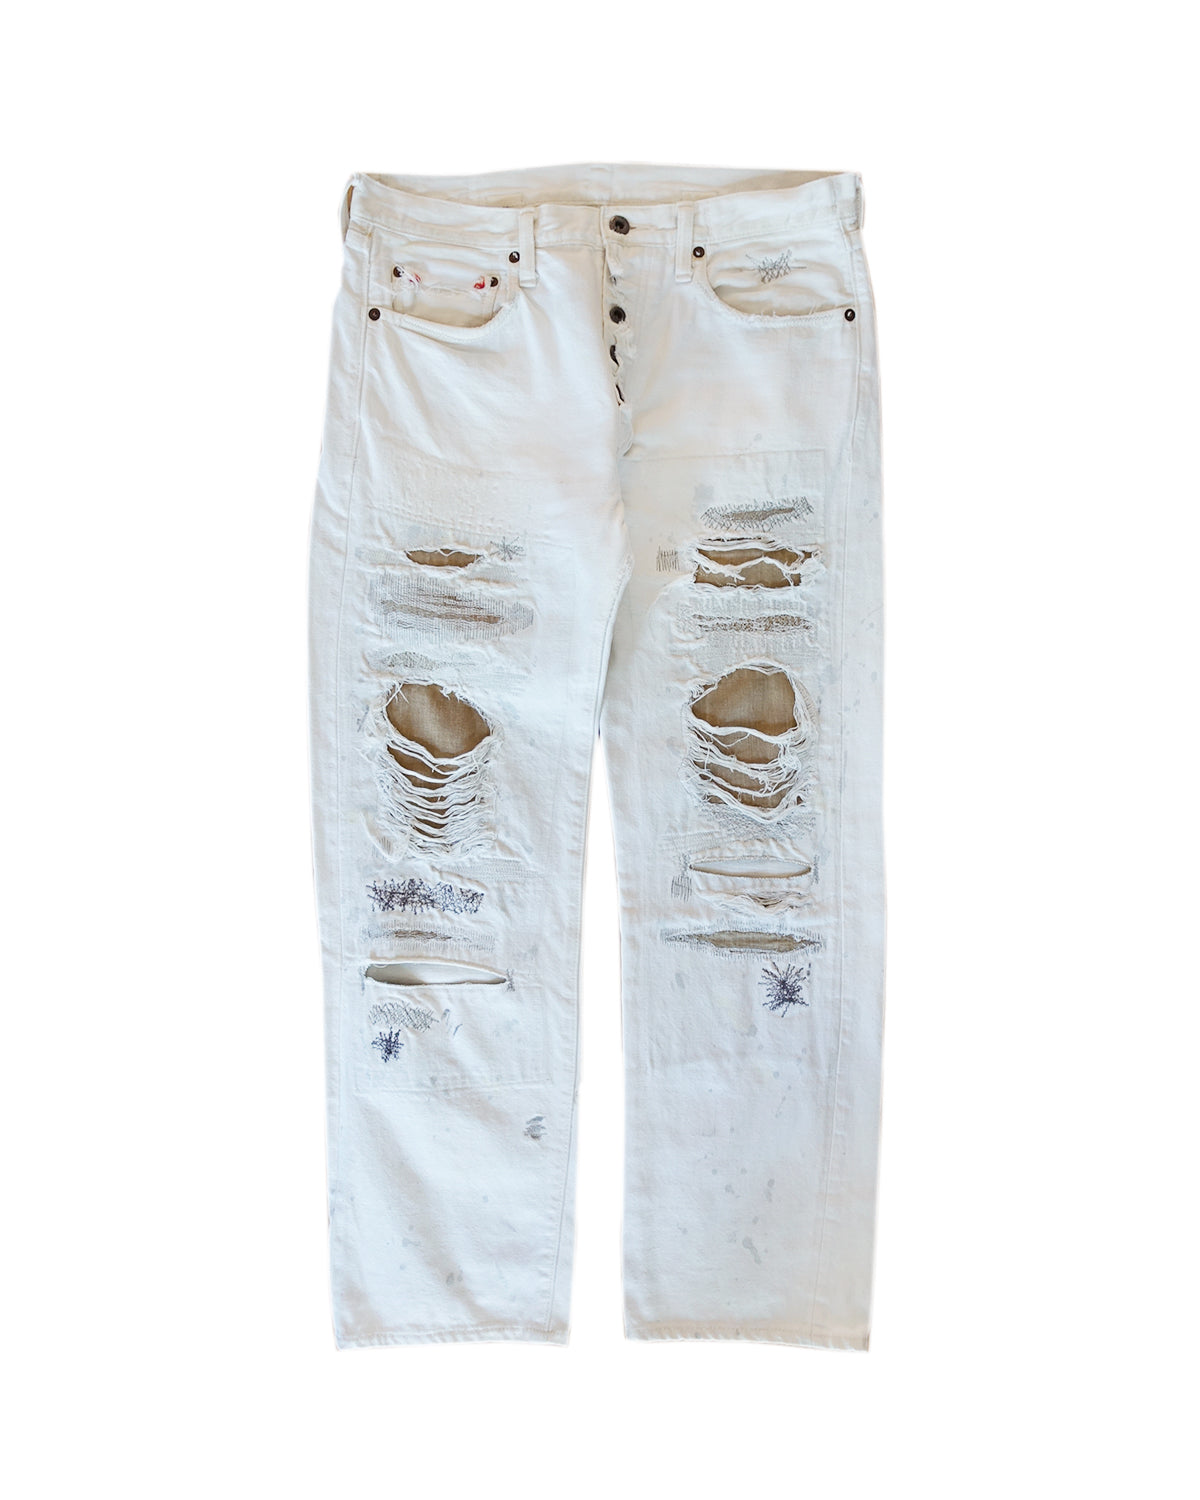 Kapital White Sashiko Repaired Denim AW2015